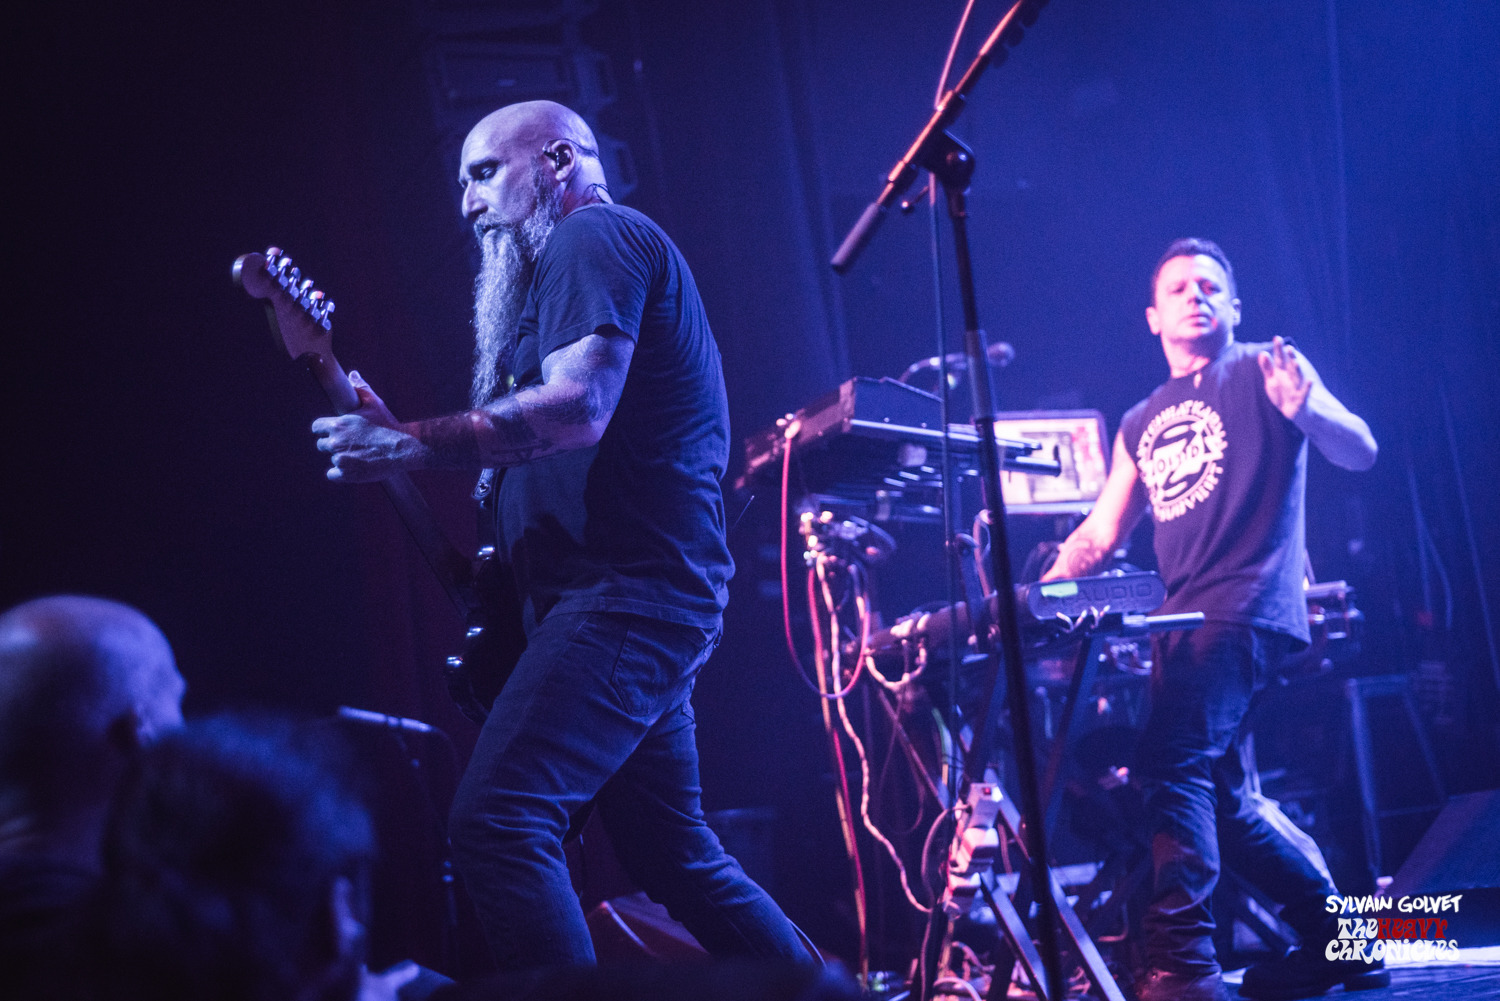 NEUROSIS-BATACLAN-THE-HEAVY-CHRONICLES-180719-11